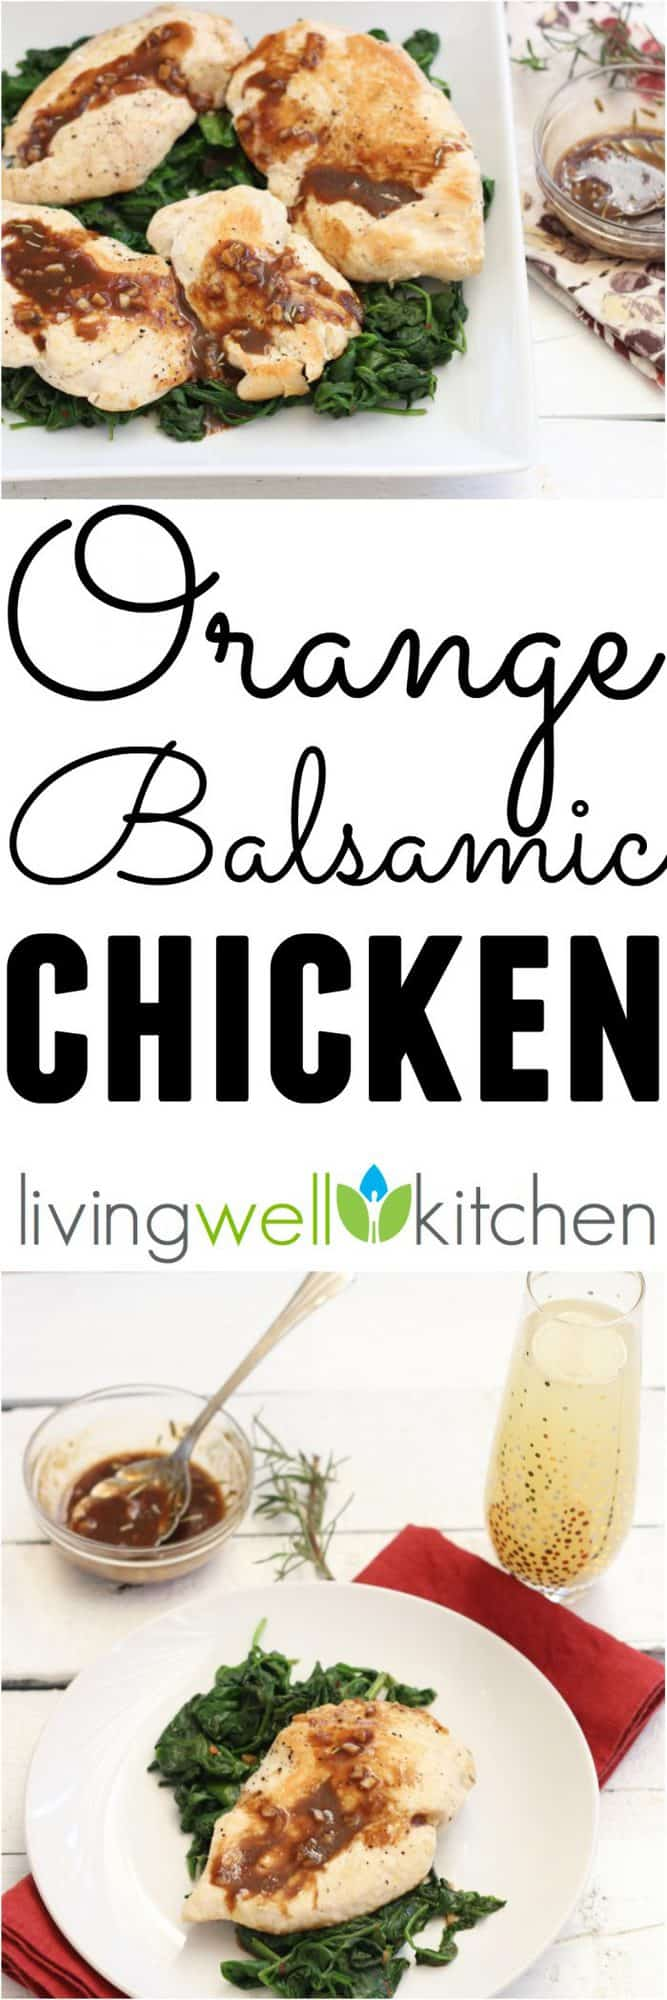 Liven up your chicken dish with this simple, one pot Orange Balsamic Chicken with Spinach from @memeinge filled with nutrients that's sweet, tangy and delicious. Gluten & dairy free